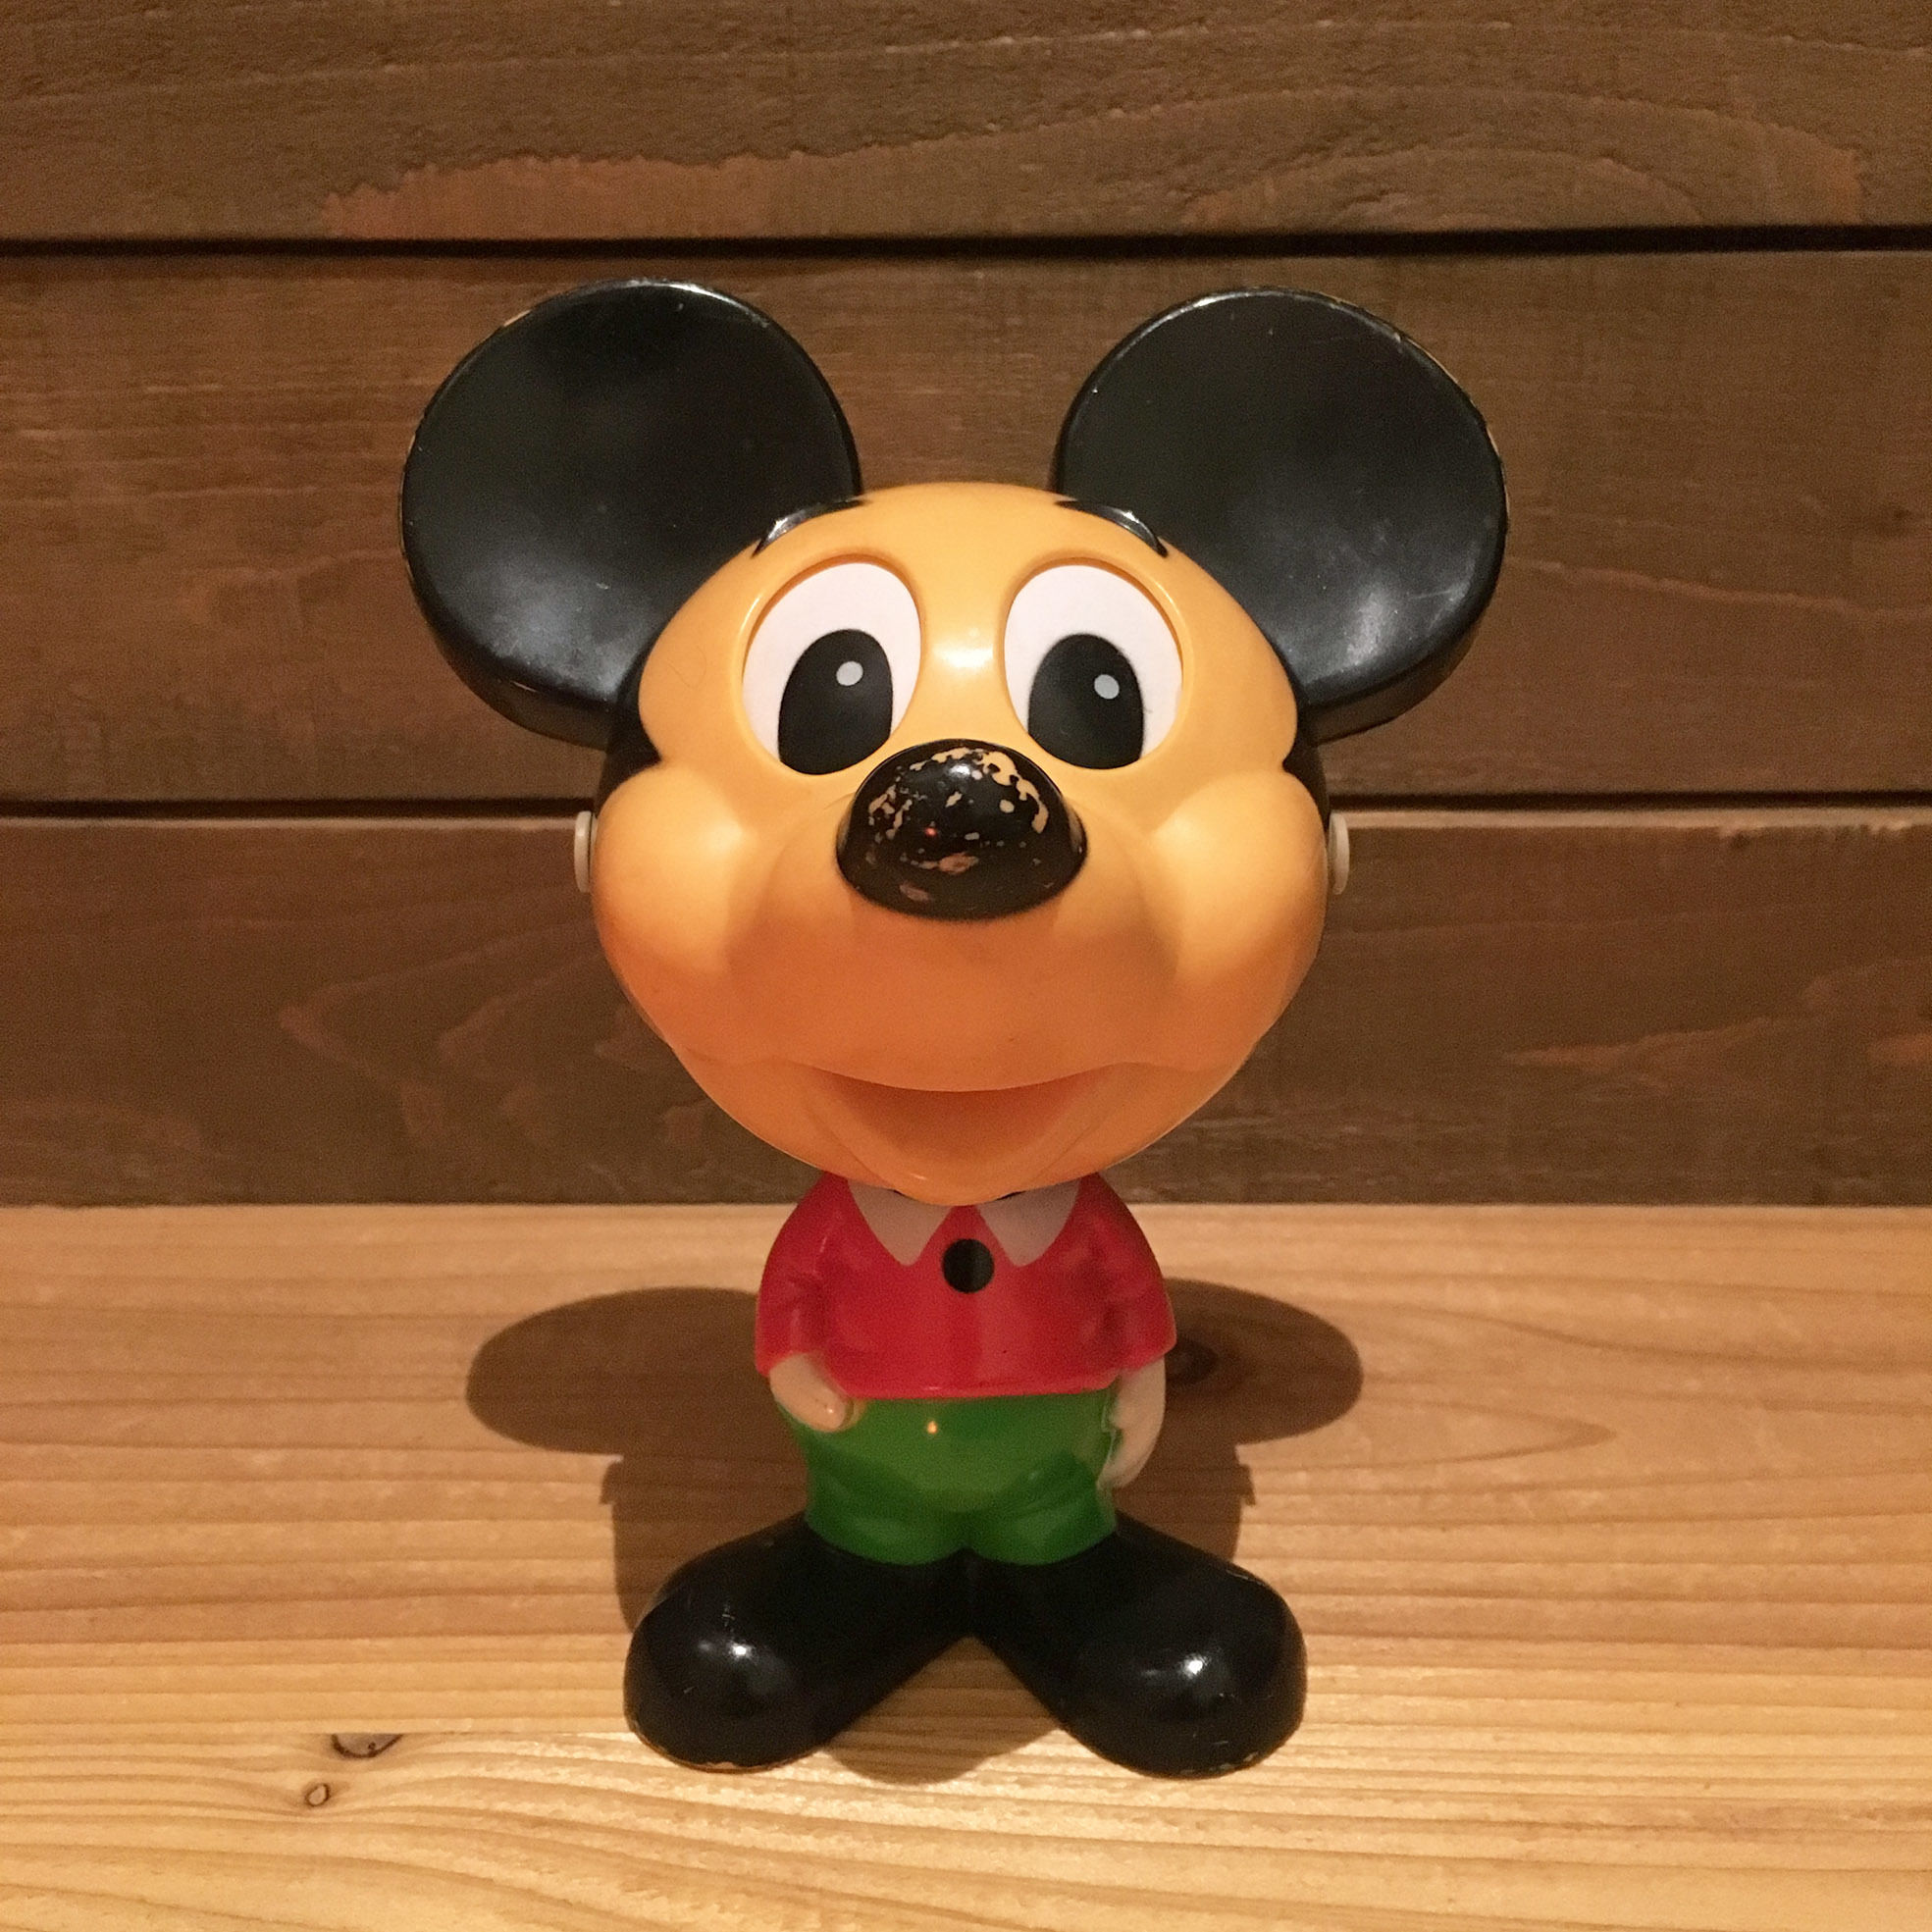 Disney Chatter Chums Mickey Mouse/ディズニー チャッターチャムス ミッキー・マウス/180223-4